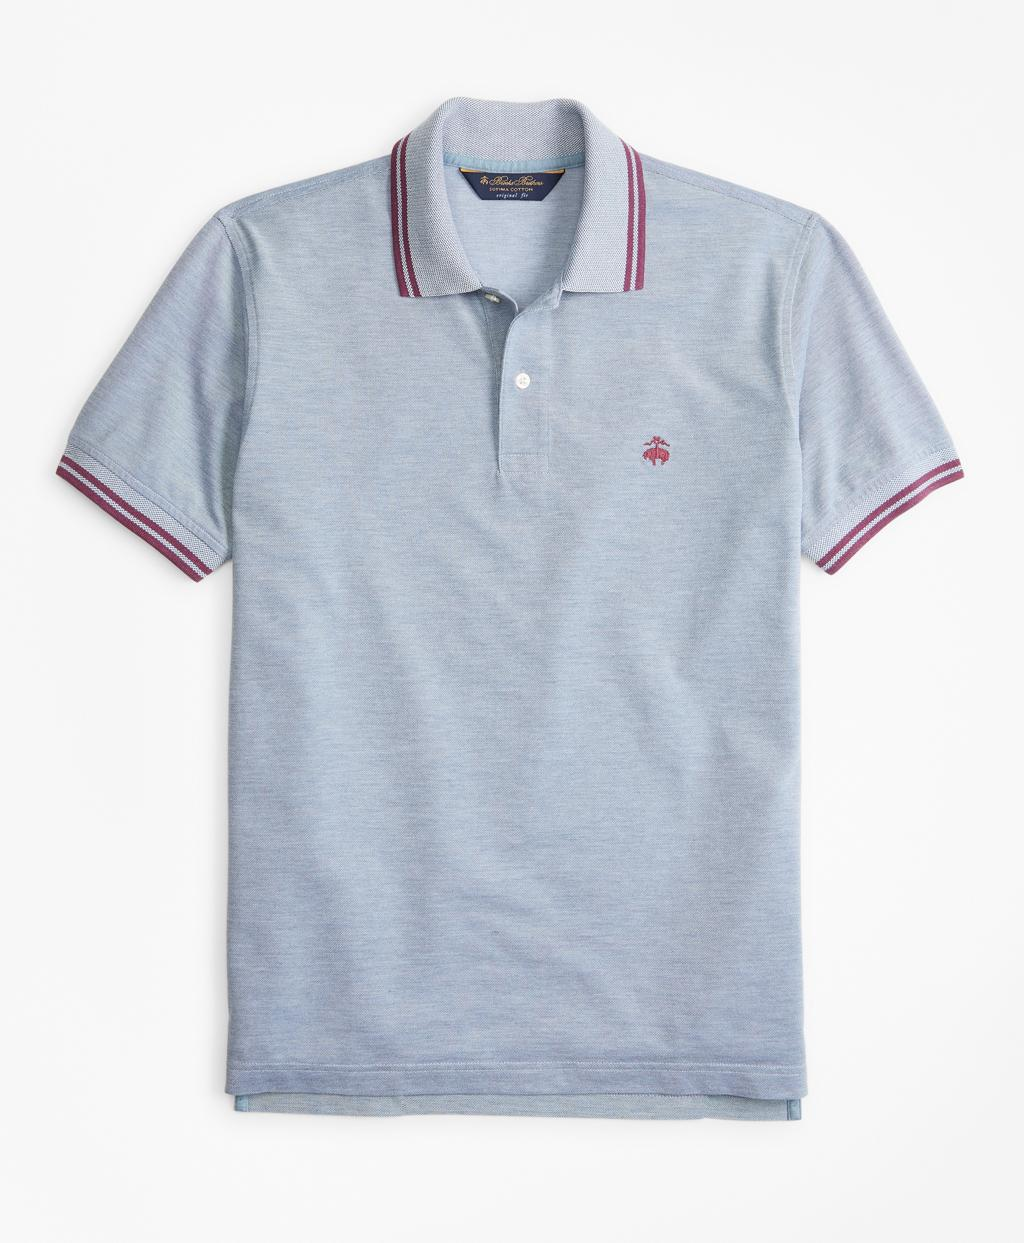 f256ea63758d Lyst - Brooks Brothers Original Fit Vintage Tennis Polo in Blue for ...